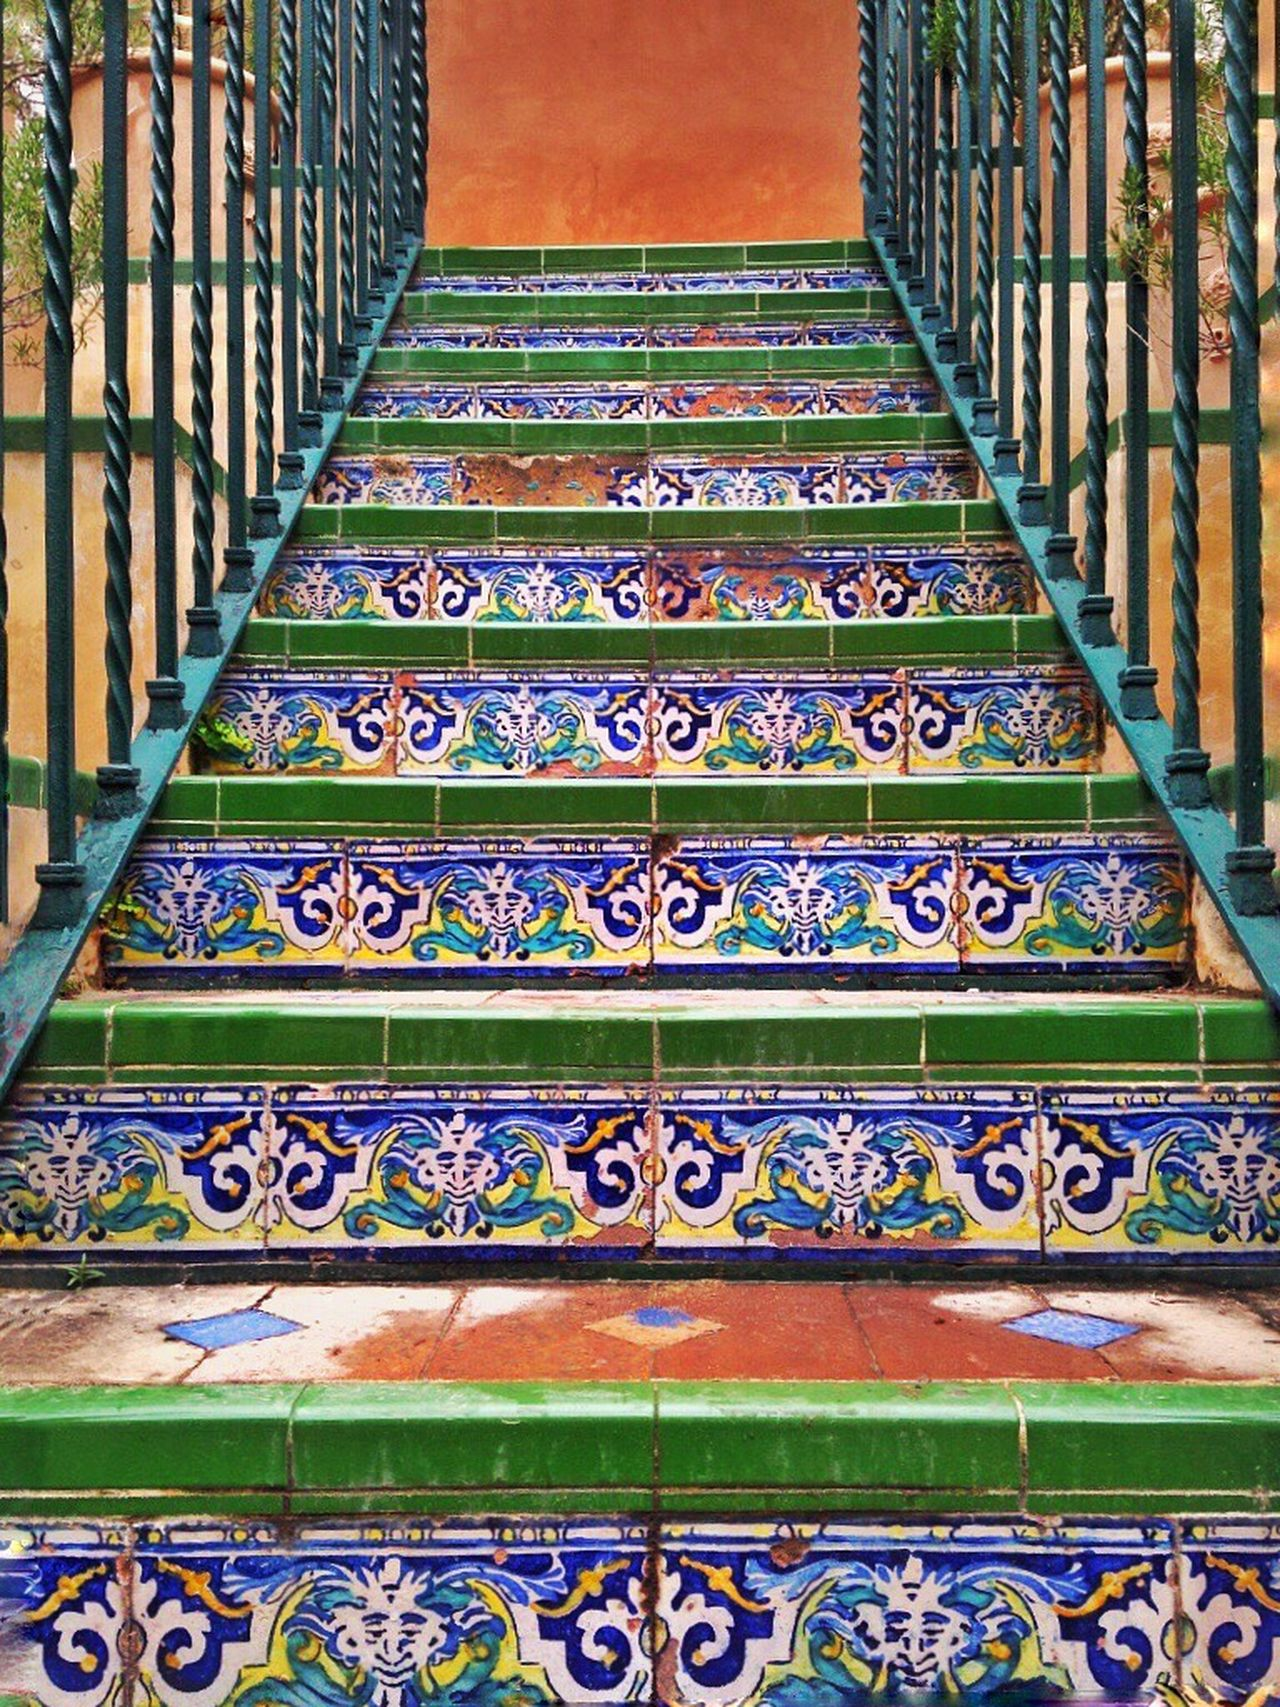 ✨We should go upstairs✨ Sevilla Alcazar SPAIN EyeEm Best Shots Capture The Moment EyeEm Gallery Fresh On Eyeem  Travel Photography Traveling Photo Stairs Andalucía Ceramics Terracotta Sightseeing Great Atmosphere Visiting Holiday Holidays Summer Colorful Art ArtWork